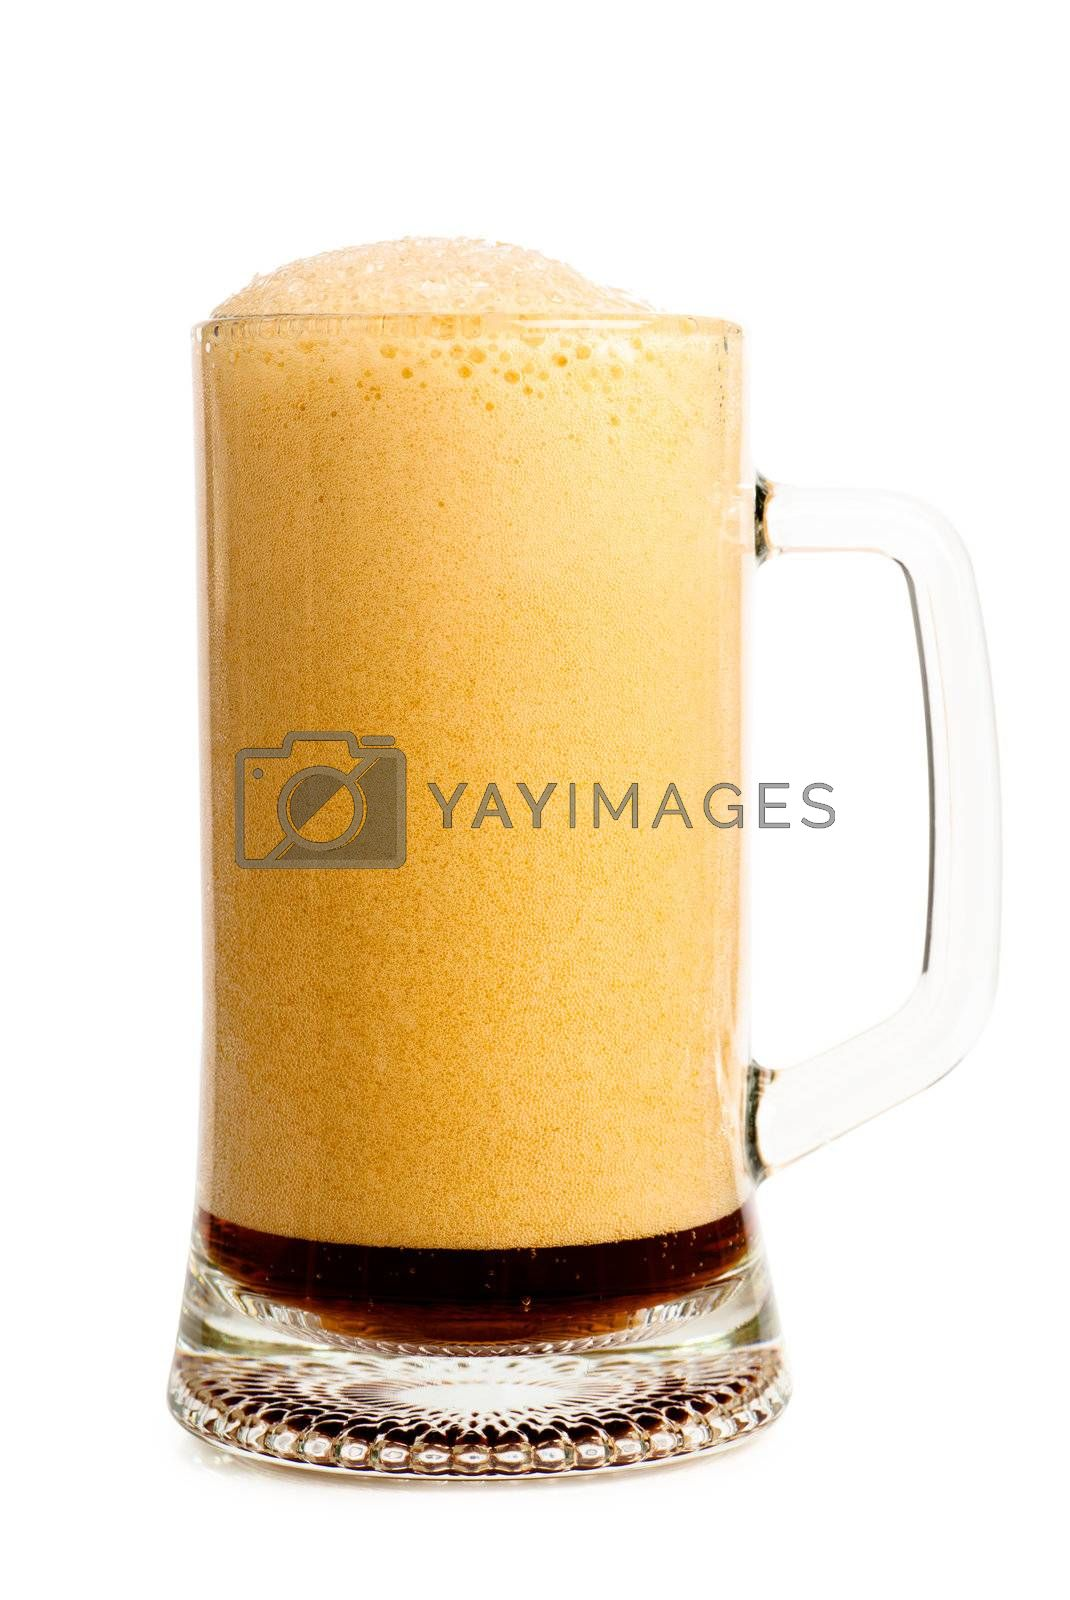 Dark beer with froth in a glass over white background